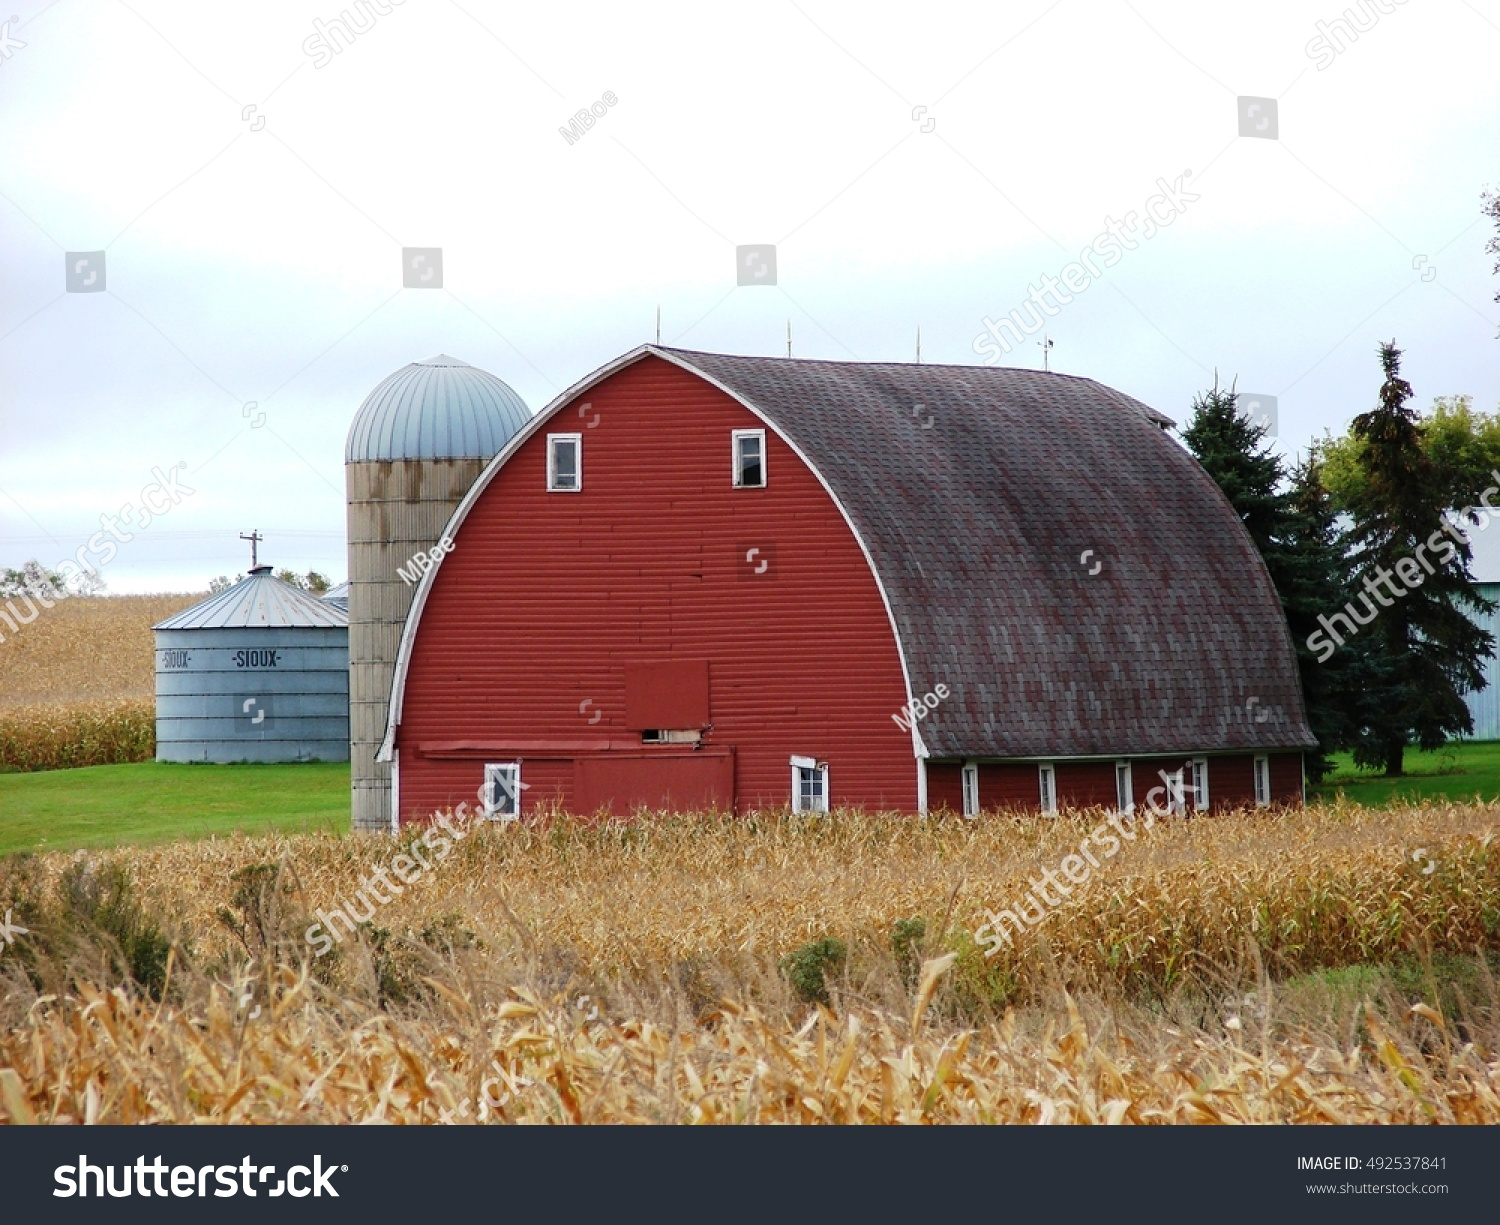 Beautiful Round Roof Red Barn And Silo